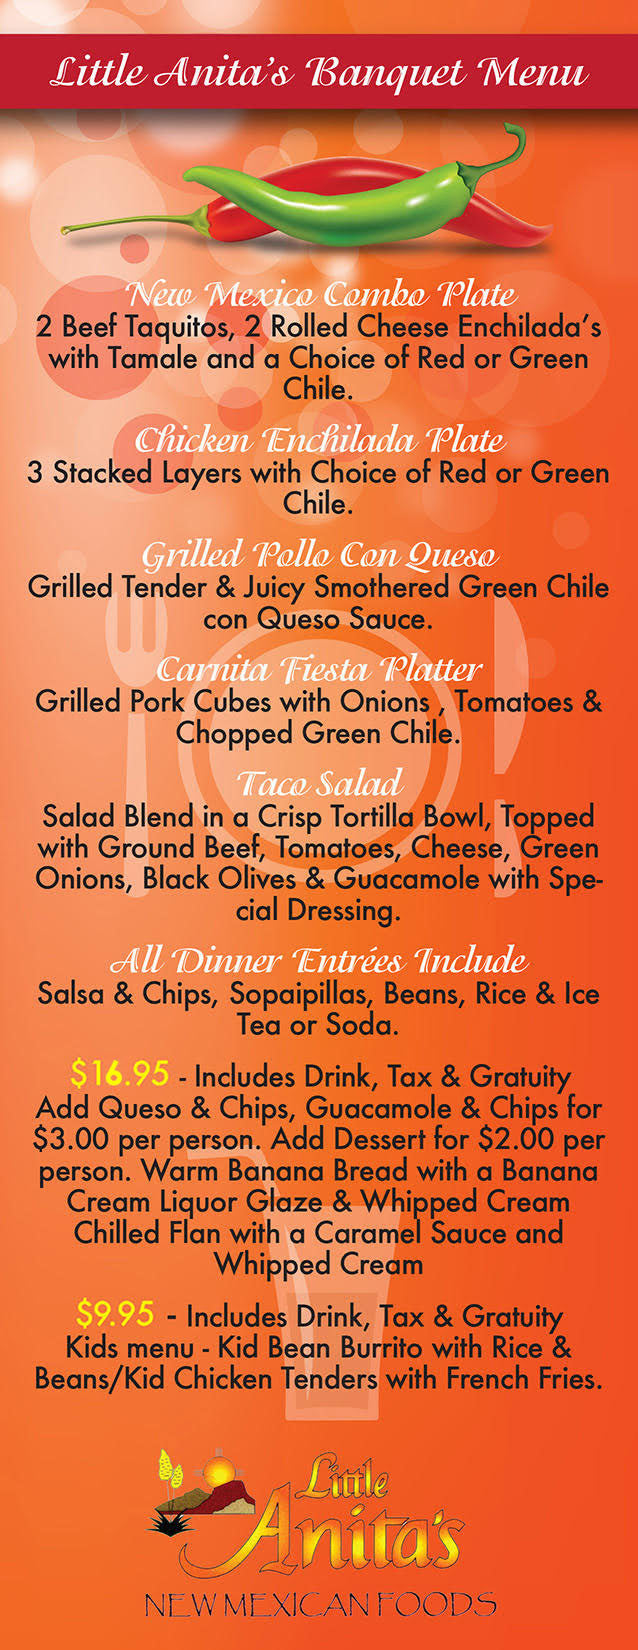 Little Anita's New Mexican Food Banquet Menu Old Town Location on Mountain in Albuquerque